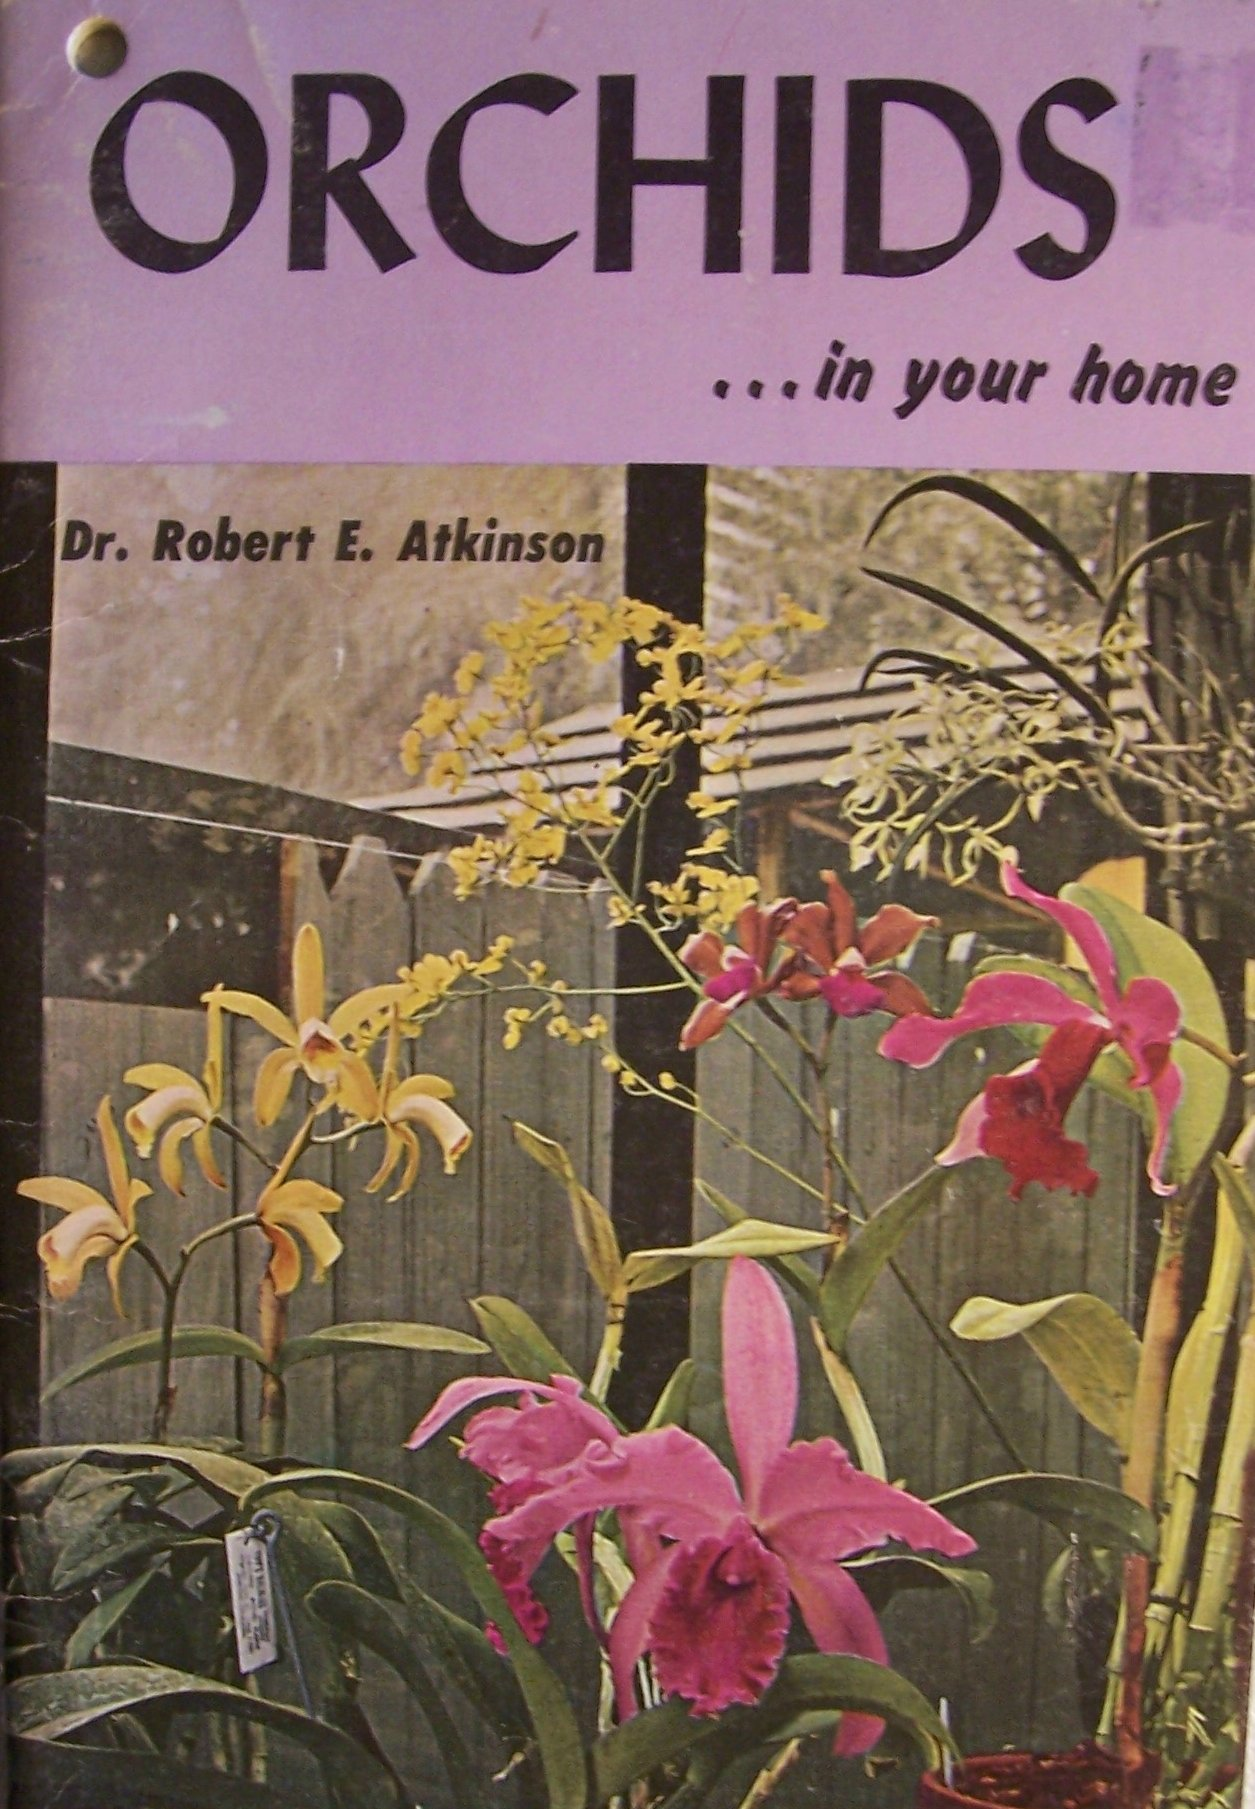 ORCHIDS... in your home [ 1961 ] T. F. H. Publications, Inc. (What is an orchid? Propagation of orchids, General culture of orchids, Orchids as house plants, Indoor greenhouse, lathhouse and outdoor culture, A catalogue of the most popular orchids, Pests and diseases)